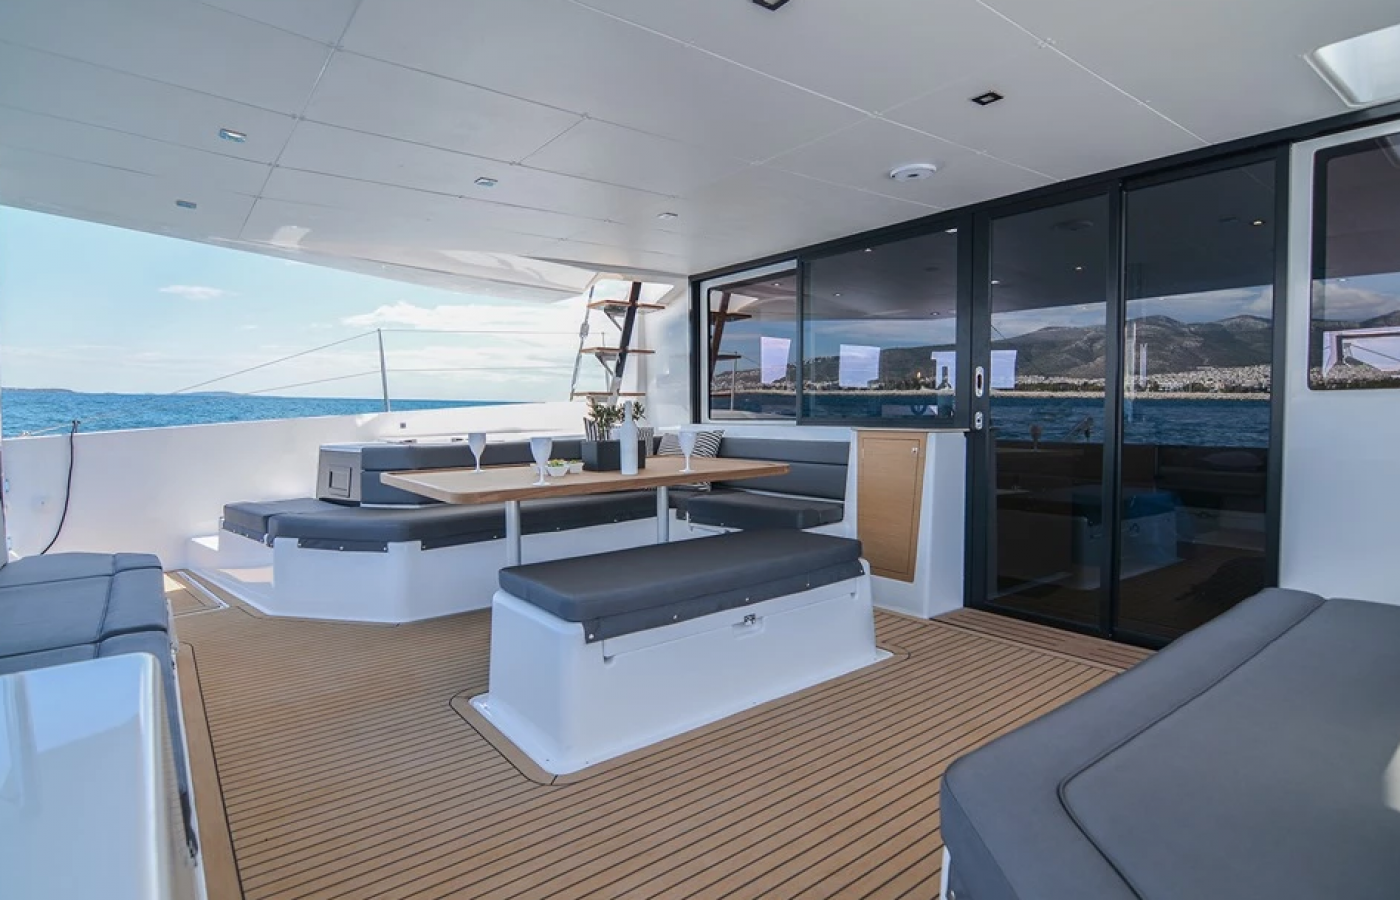 Ample seating on the stern of the boat